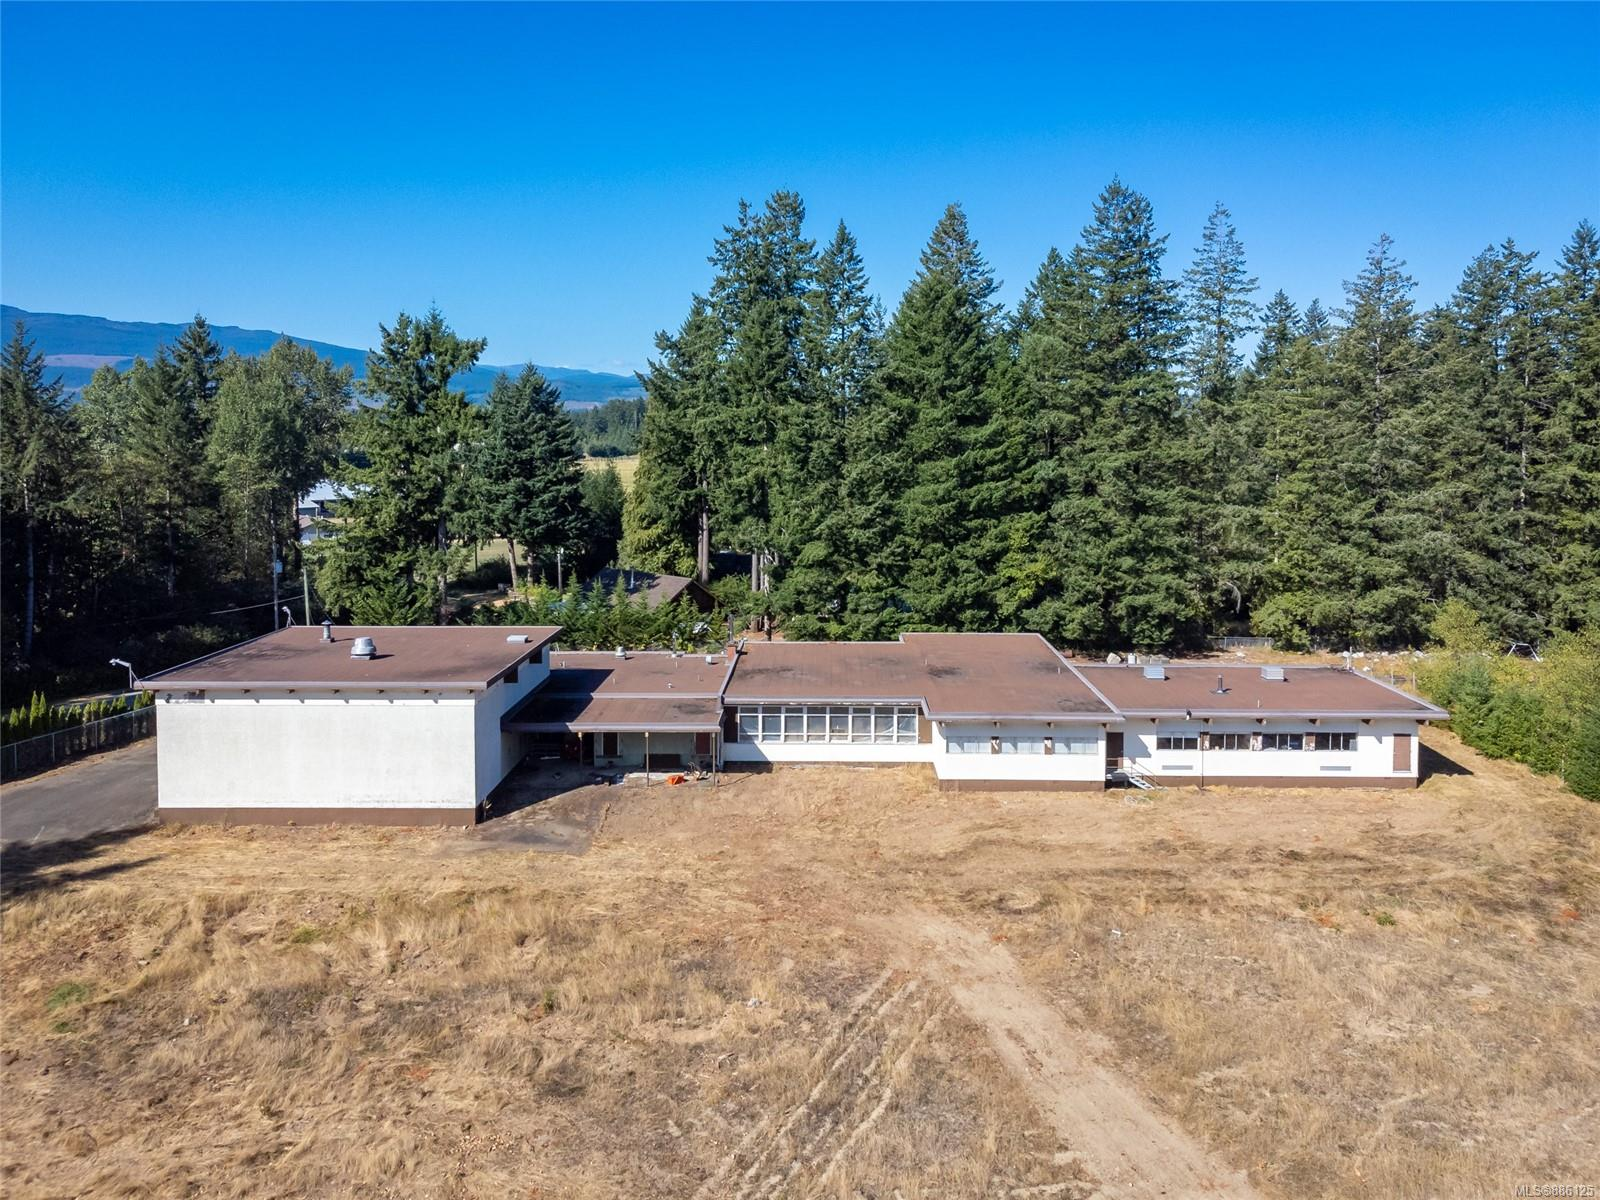 """1160 sqft 2 bedroom and 2 bathroom residence on 4 acres with a +/- 15,000 sqft ft building. This property is the old Black Creek Elementary School grounds which now include the home and a """"dug pond"""". The school building """"appears"""" to be in good condition including the gymnasium, main classrooms, office etc. The home was moved onto the property approximately 12 years ago but remains vacant and in a basic condition with no known septic, connected power or water.  The septic system for the school is unknown, however there is an RD water connection together with a shallow well. This property is being sold """"As-is where-is"""" with no representation from the owner company. The A-1 zoning allows for Assembly and or Institutional use but the RD may allow other activities upon request and application. The Zoning also allows for one single family dwelling. This is excellent value based upon the replacement costs associated with a +/- 15,000 squ ft building, the 4 acres, dwelling and location."""